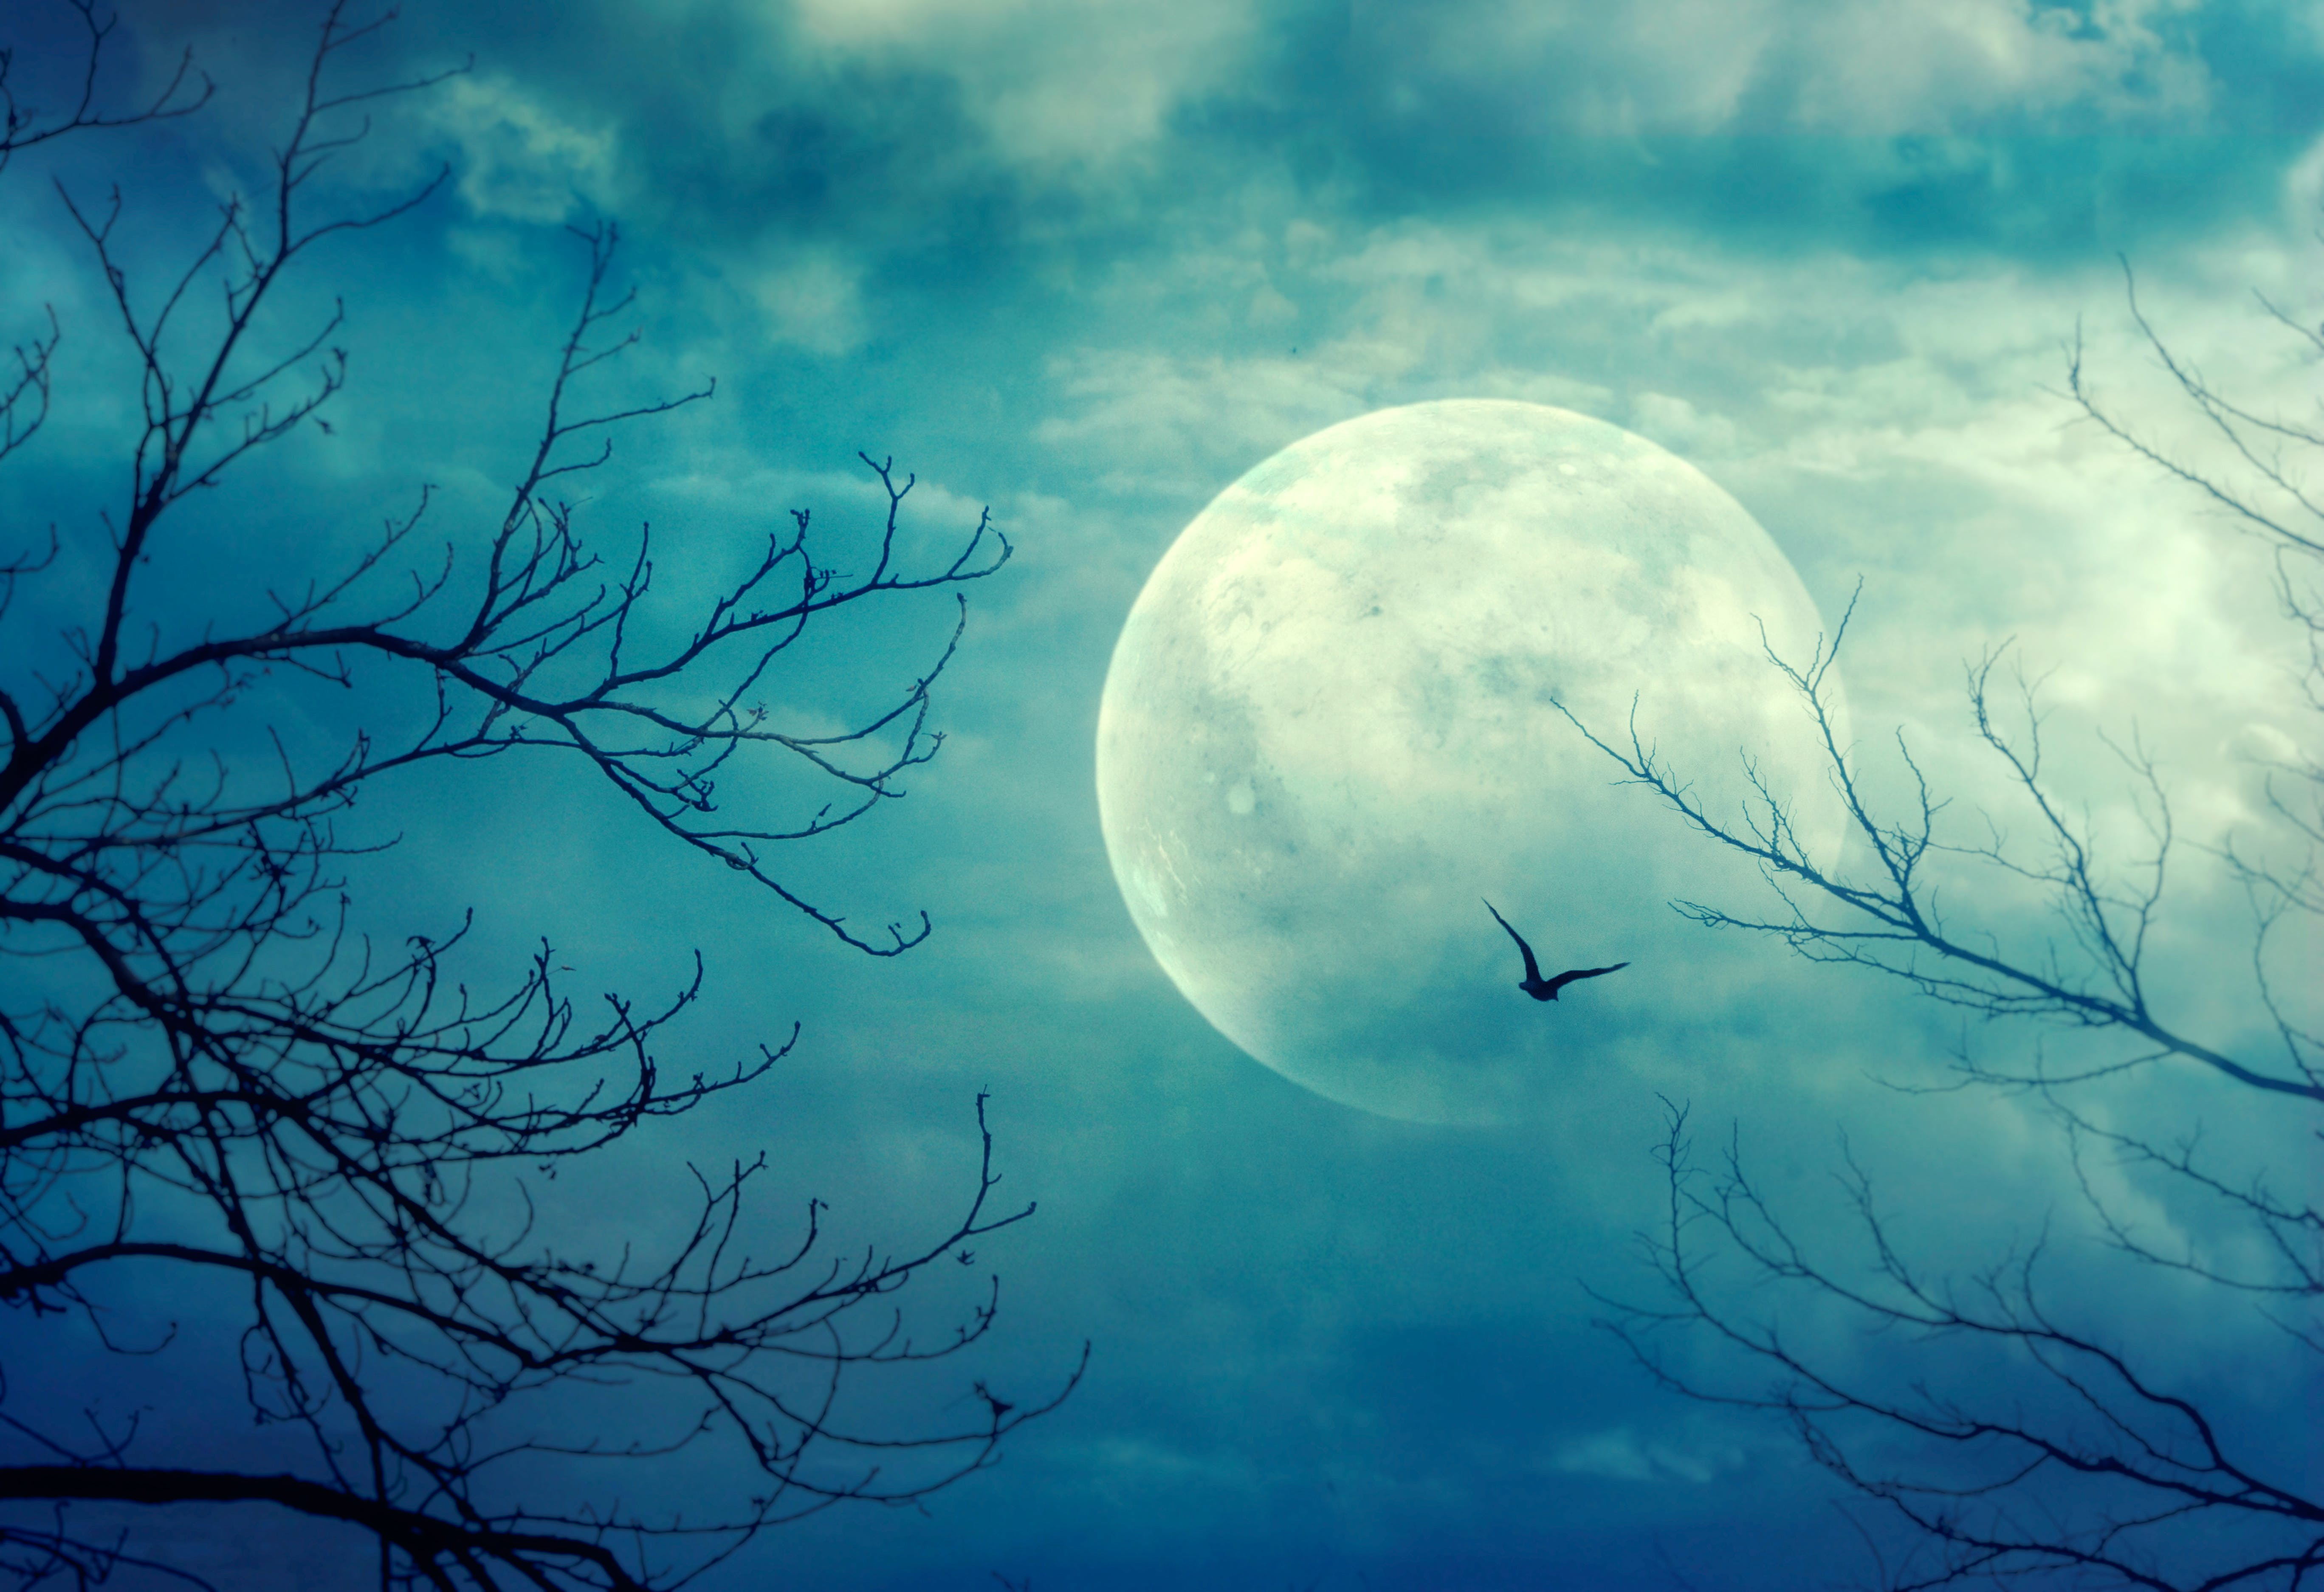 A full moon on Oct. 31 is quite rare, but trick-or-treaters will be able to look up and see one this year.